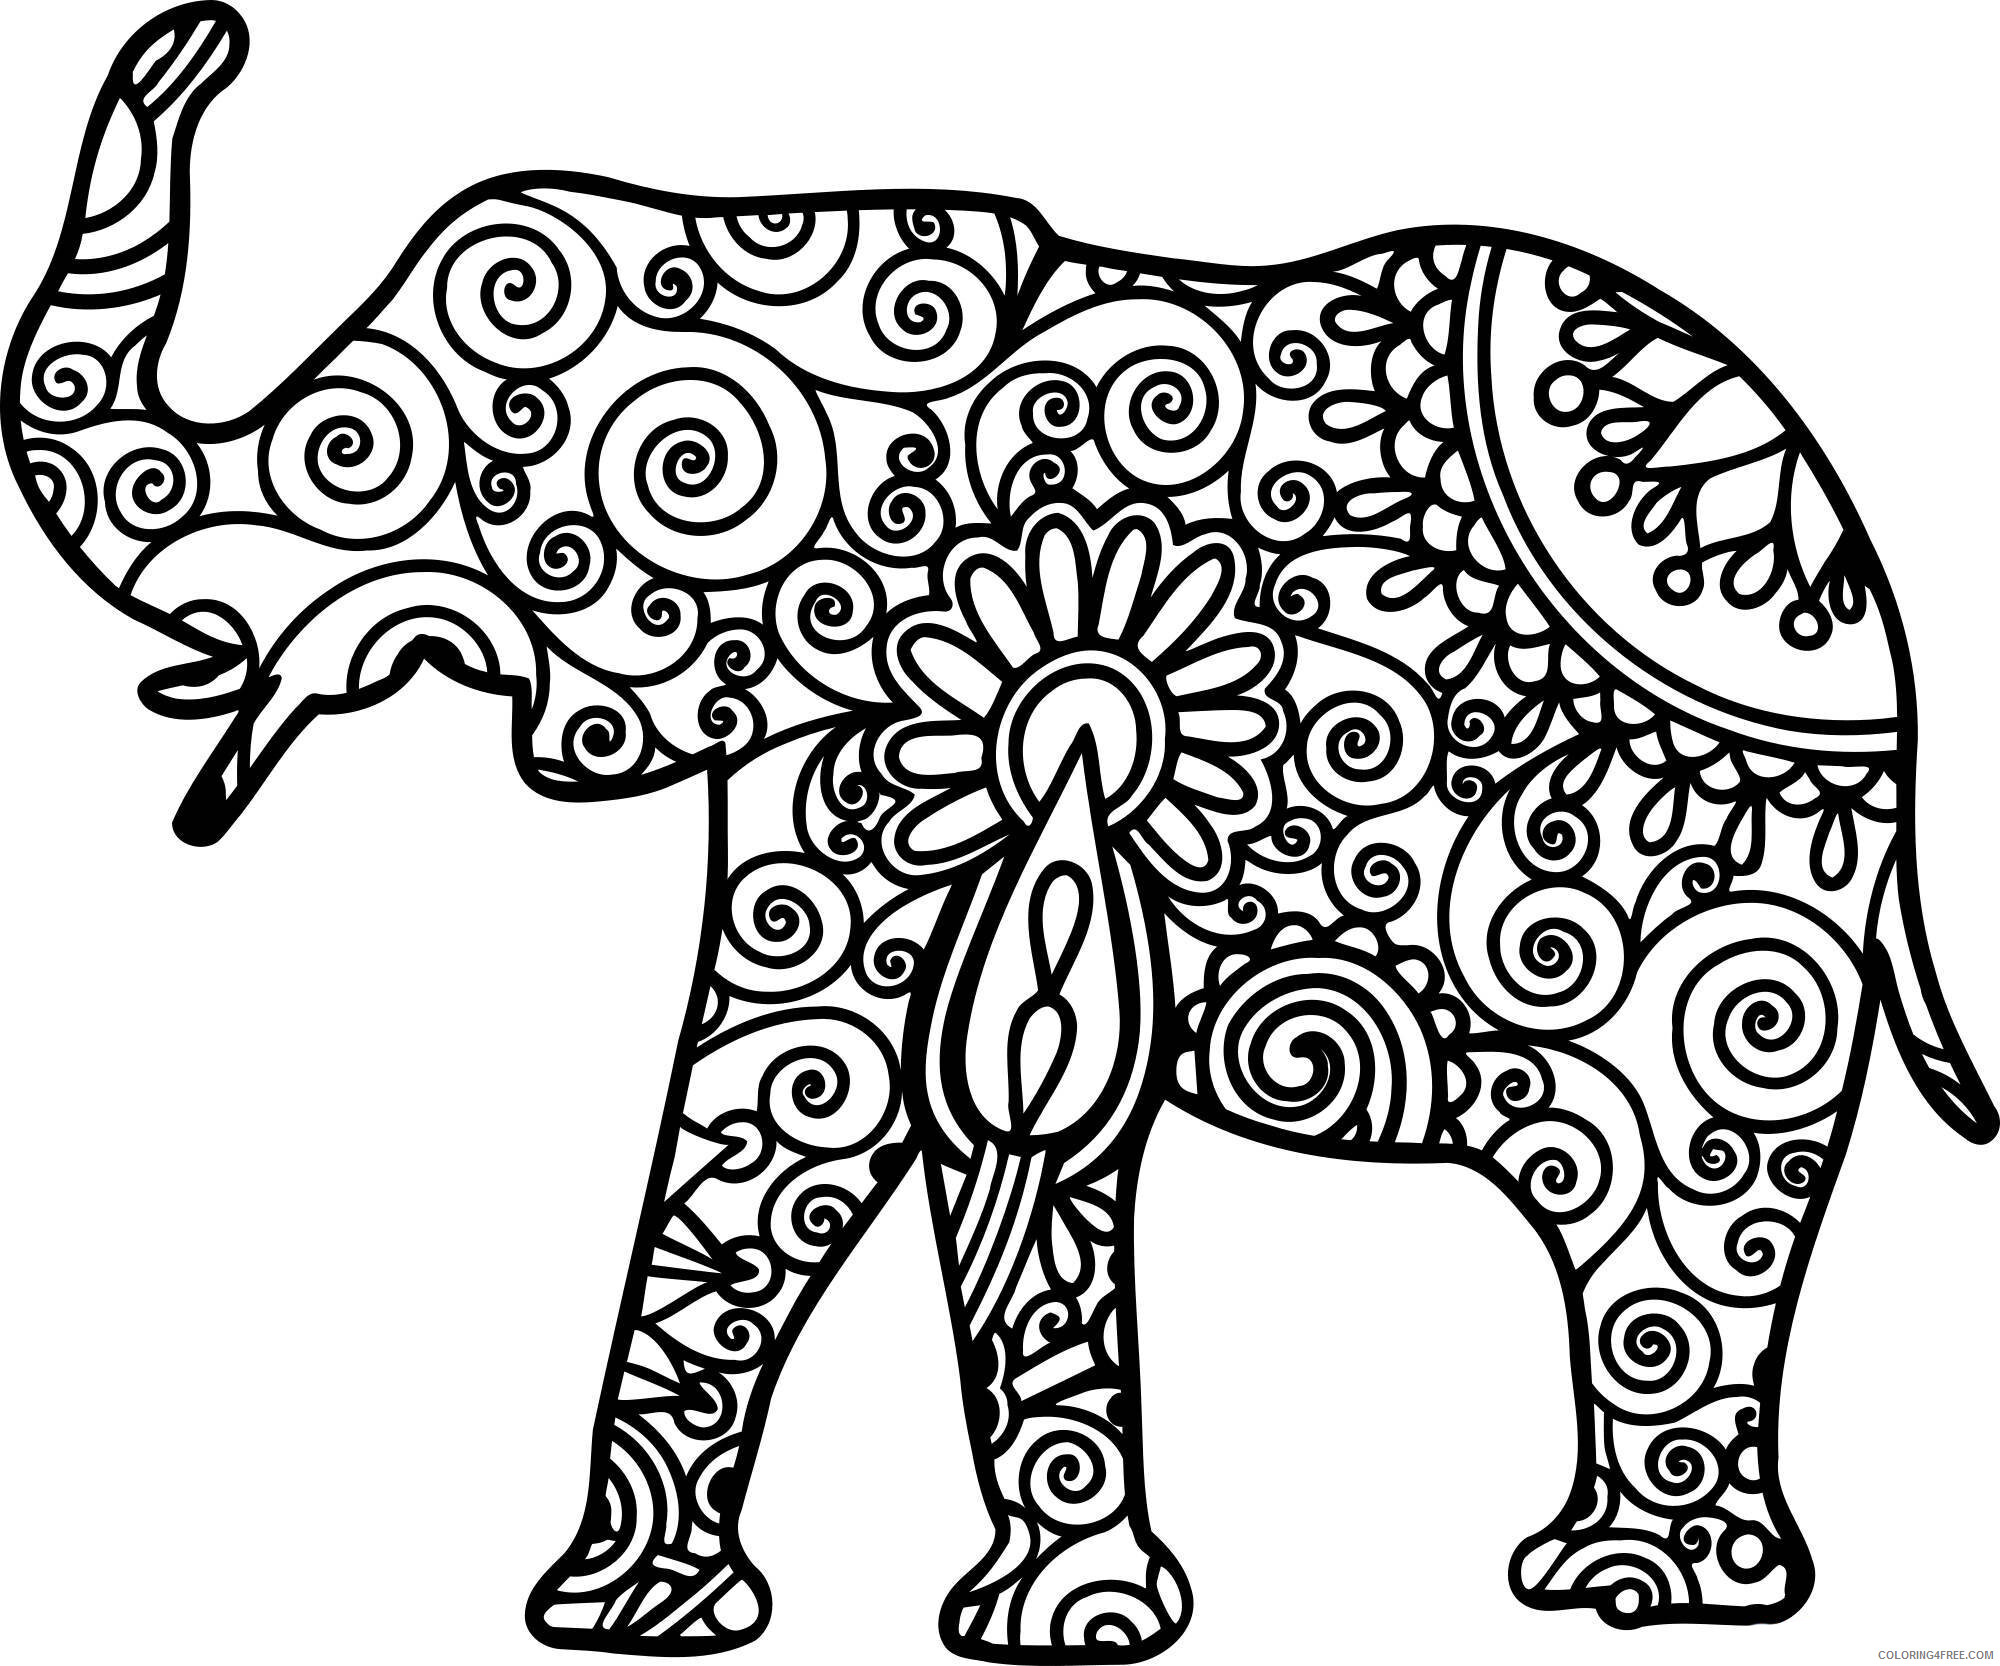 Adult Elephant Coloring Pages Elephant Design for Adults to Printable 2020 280 Coloring4free